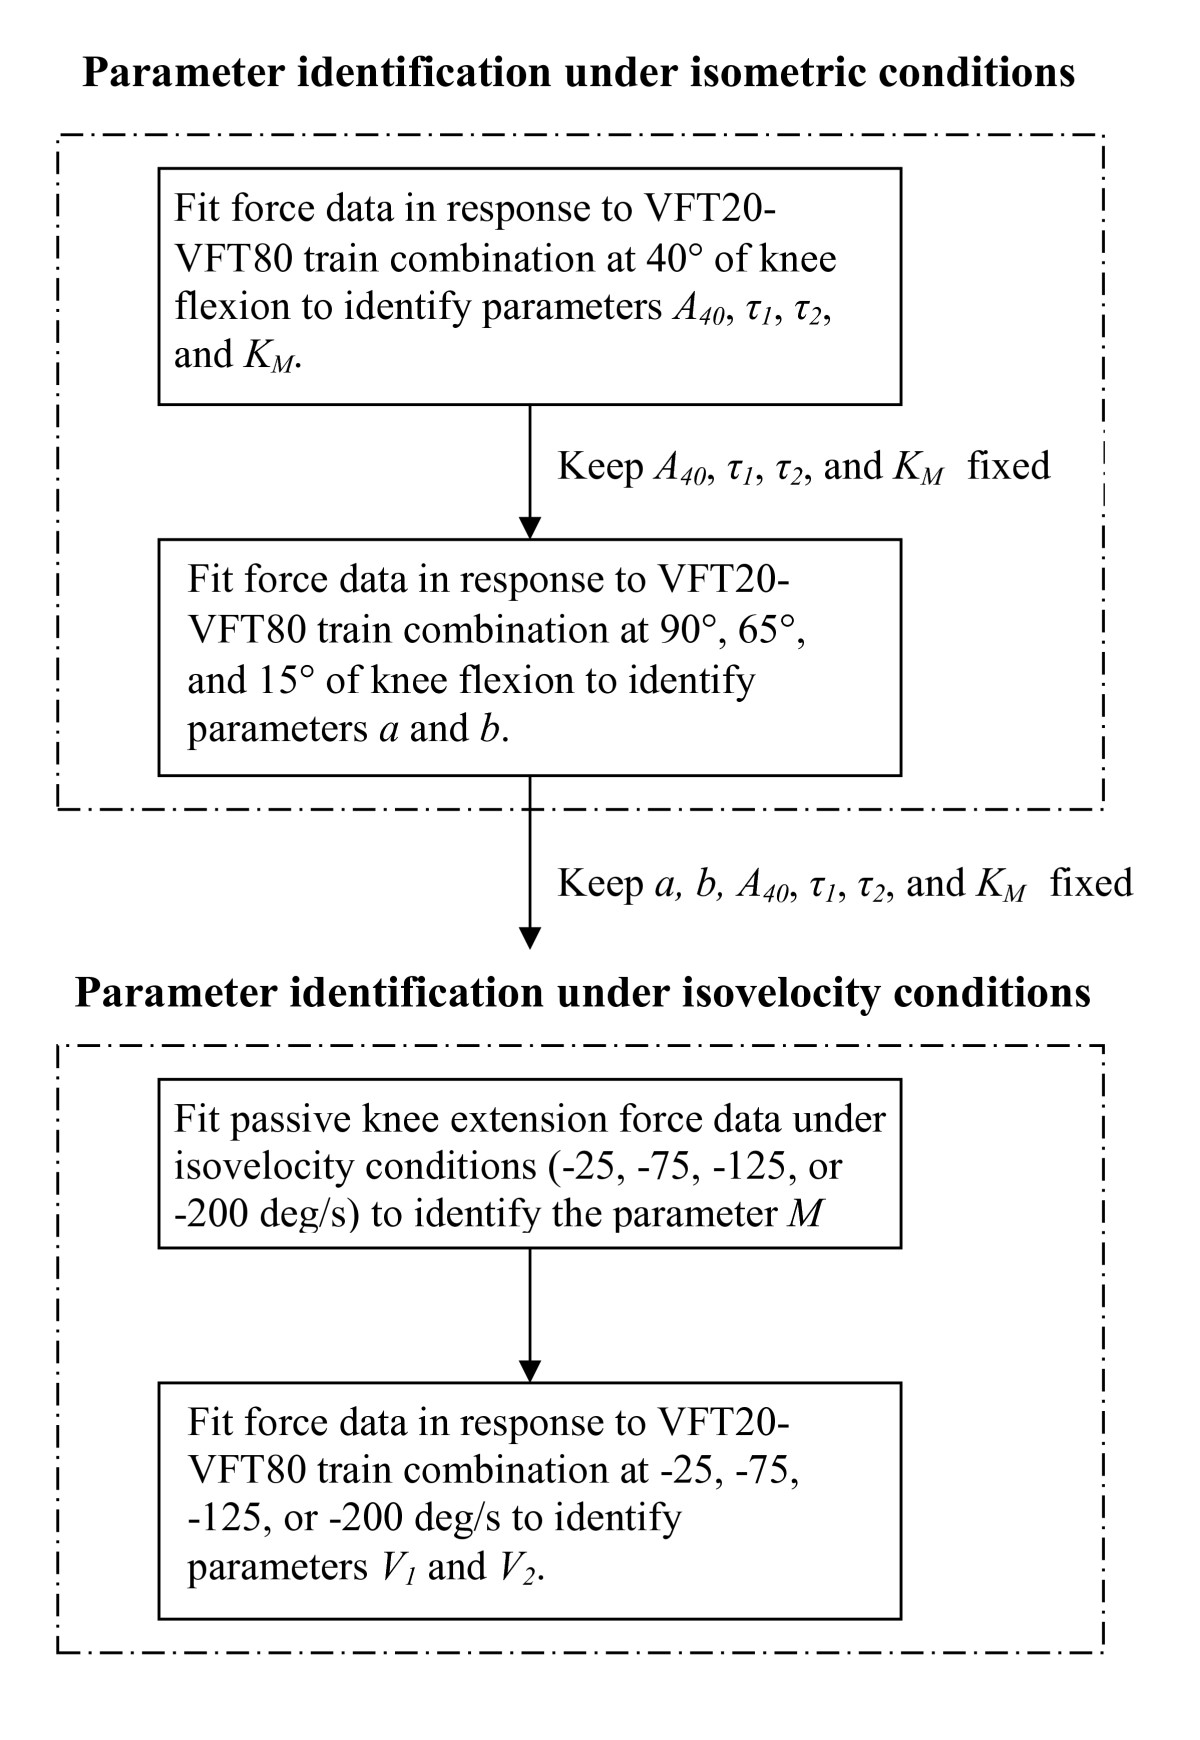 http://static-content.springer.com/image/art%3A10.1186%2F1743-0003-5-33/MediaObjects/12984_2007_Article_157_Fig4_HTML.jpg